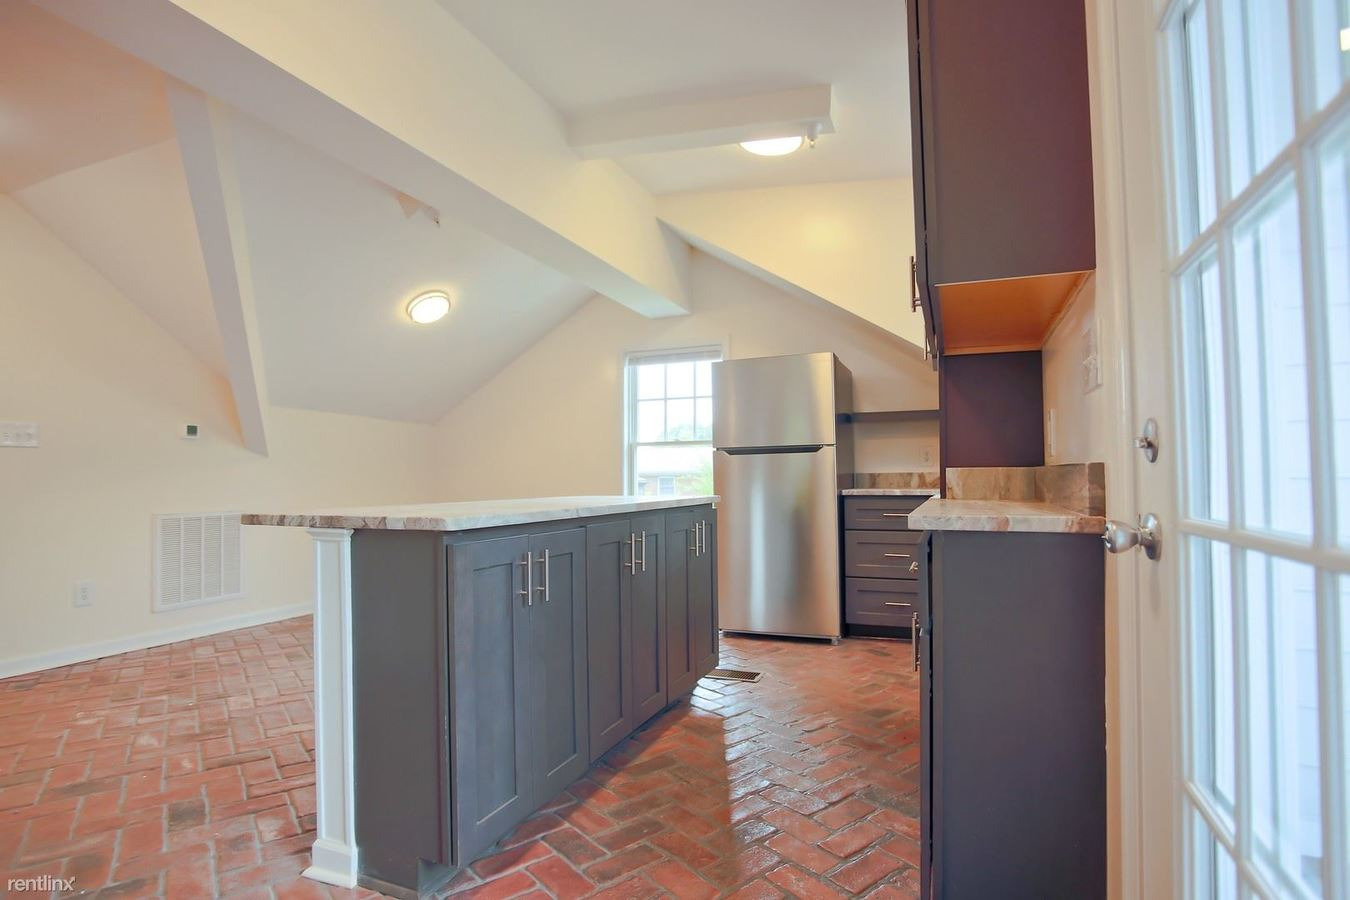 1 Bedroom 1 Bathroom Apartment for rent at 513/515 14th Street Nw in Charlottesville, VA